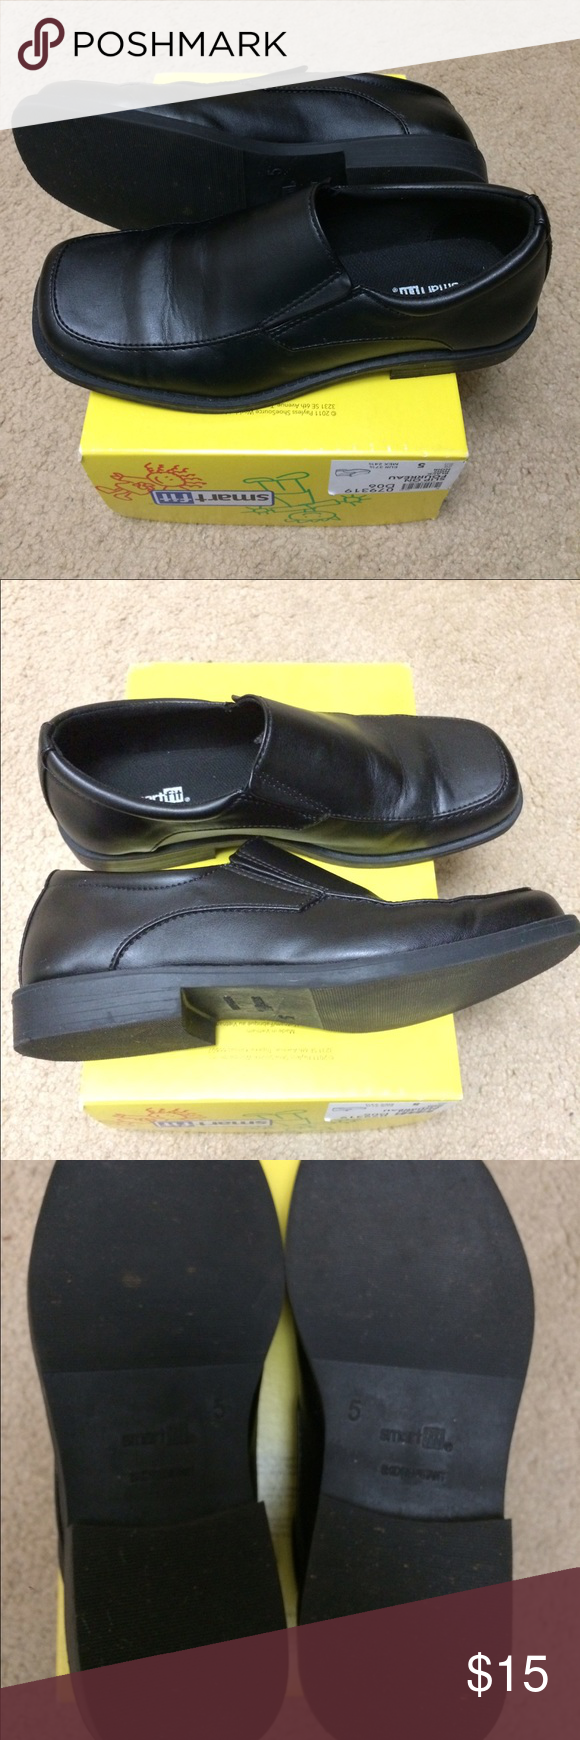 Black SmartFit Slip On Fourreau Dress Shoes Size 5 This is a pair of boys Black SmartFit Slip On Fourreau Dress Shoes Size 5 in excellent condition. Worn once to a wedding, there is very little wear. Please see all pics. Has box but not lid. Perfect for the holidays, church, a wedding or any dress up occasion.  Clean, pet and smoke free home. Thank you! Shoes Dress Shoes